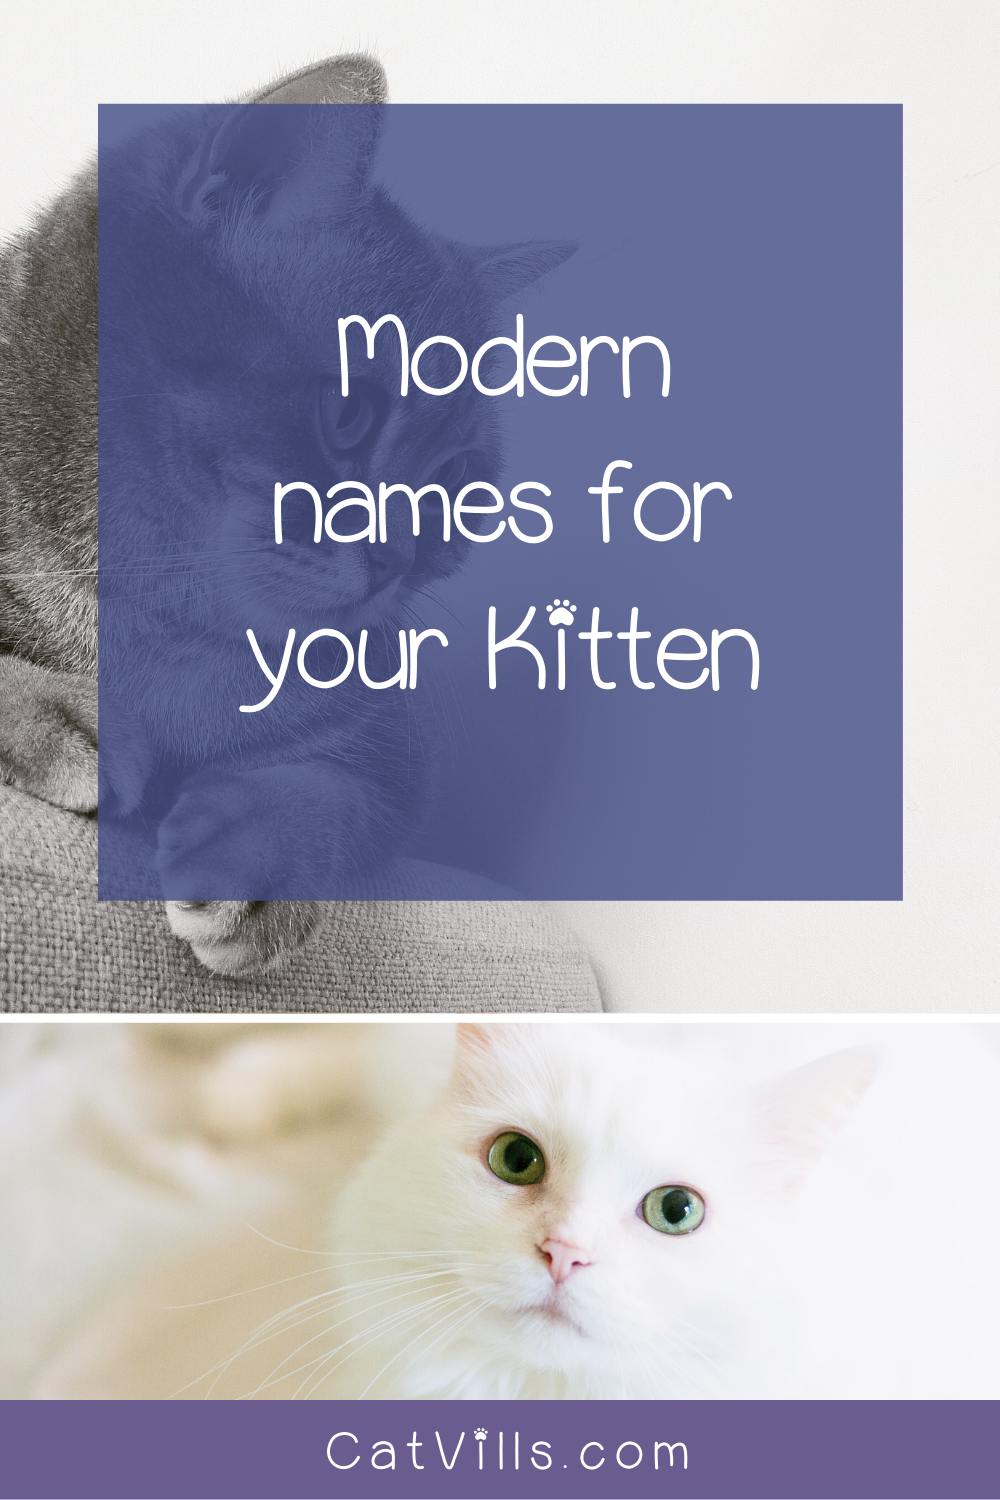 19 Totally Perfect Male Cat Names You Ll Love Catvills In 2020 Cat Names Kitten Names Funny Cat Memes